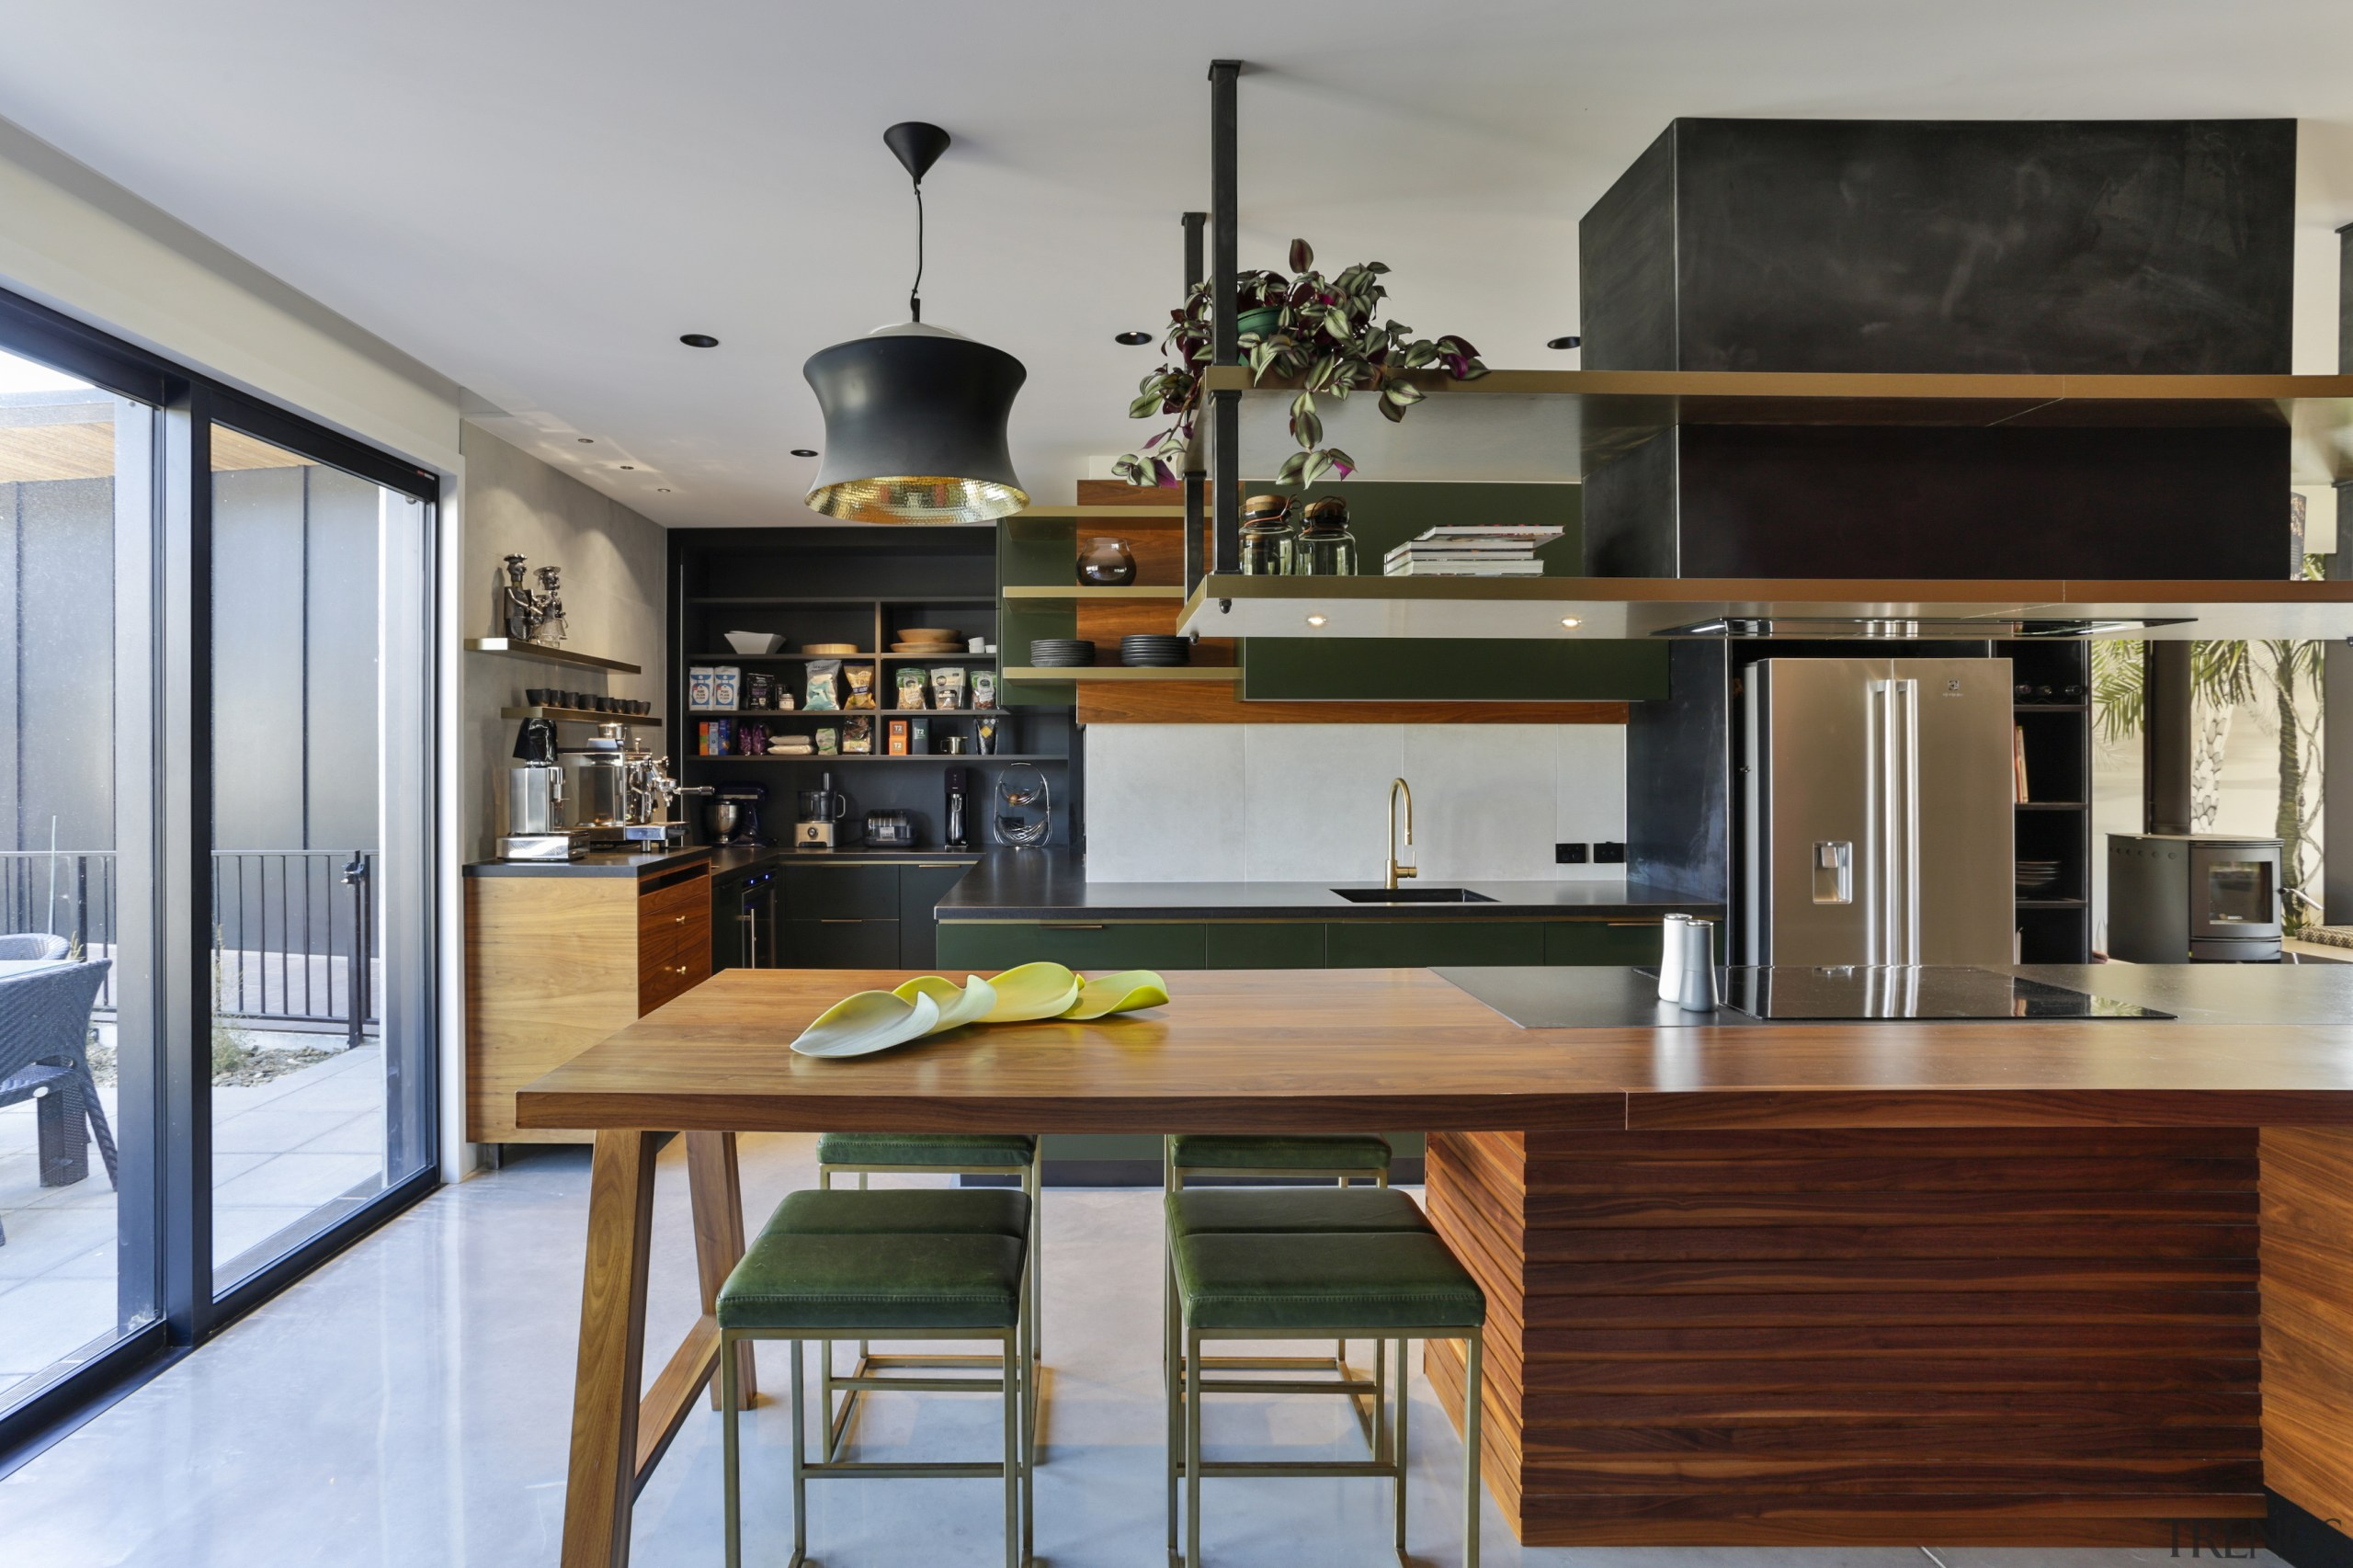 The zoning of the kitchen was carefully considered.